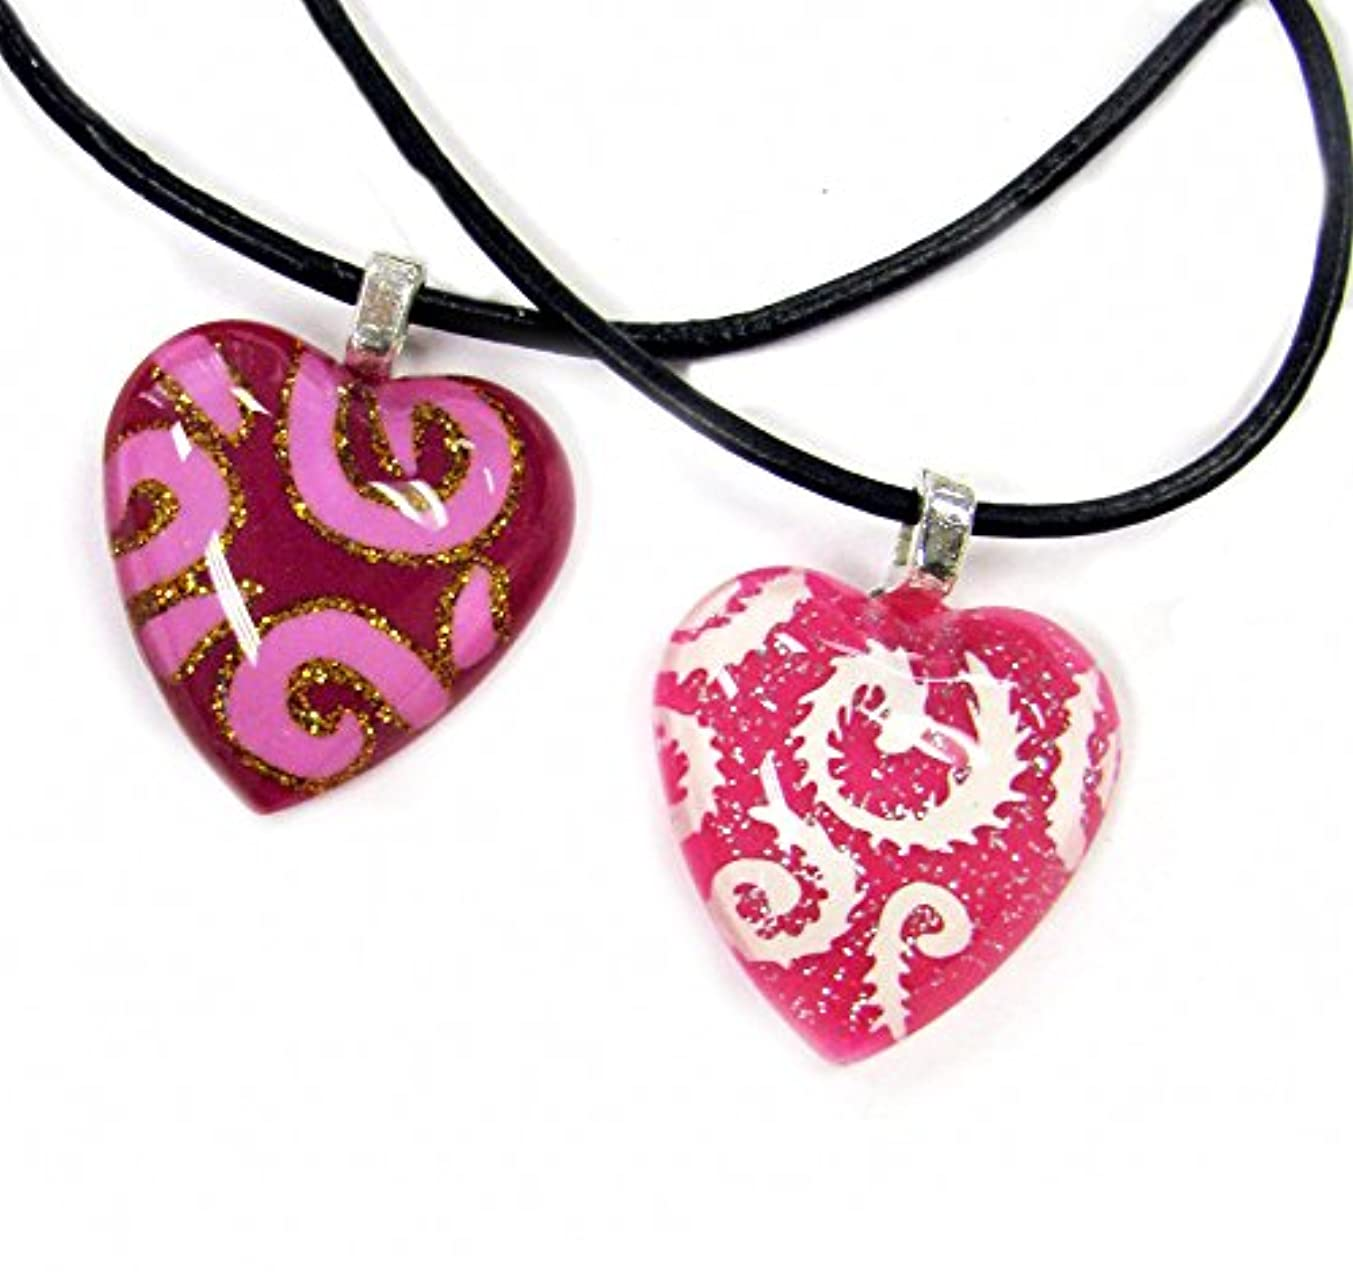 Linpeng BRO-04/05 Curvy Pattern Puffy Heart with Curvy Patterns Fiberglass Pendants with Black Cord Necklaces (2 Pack)